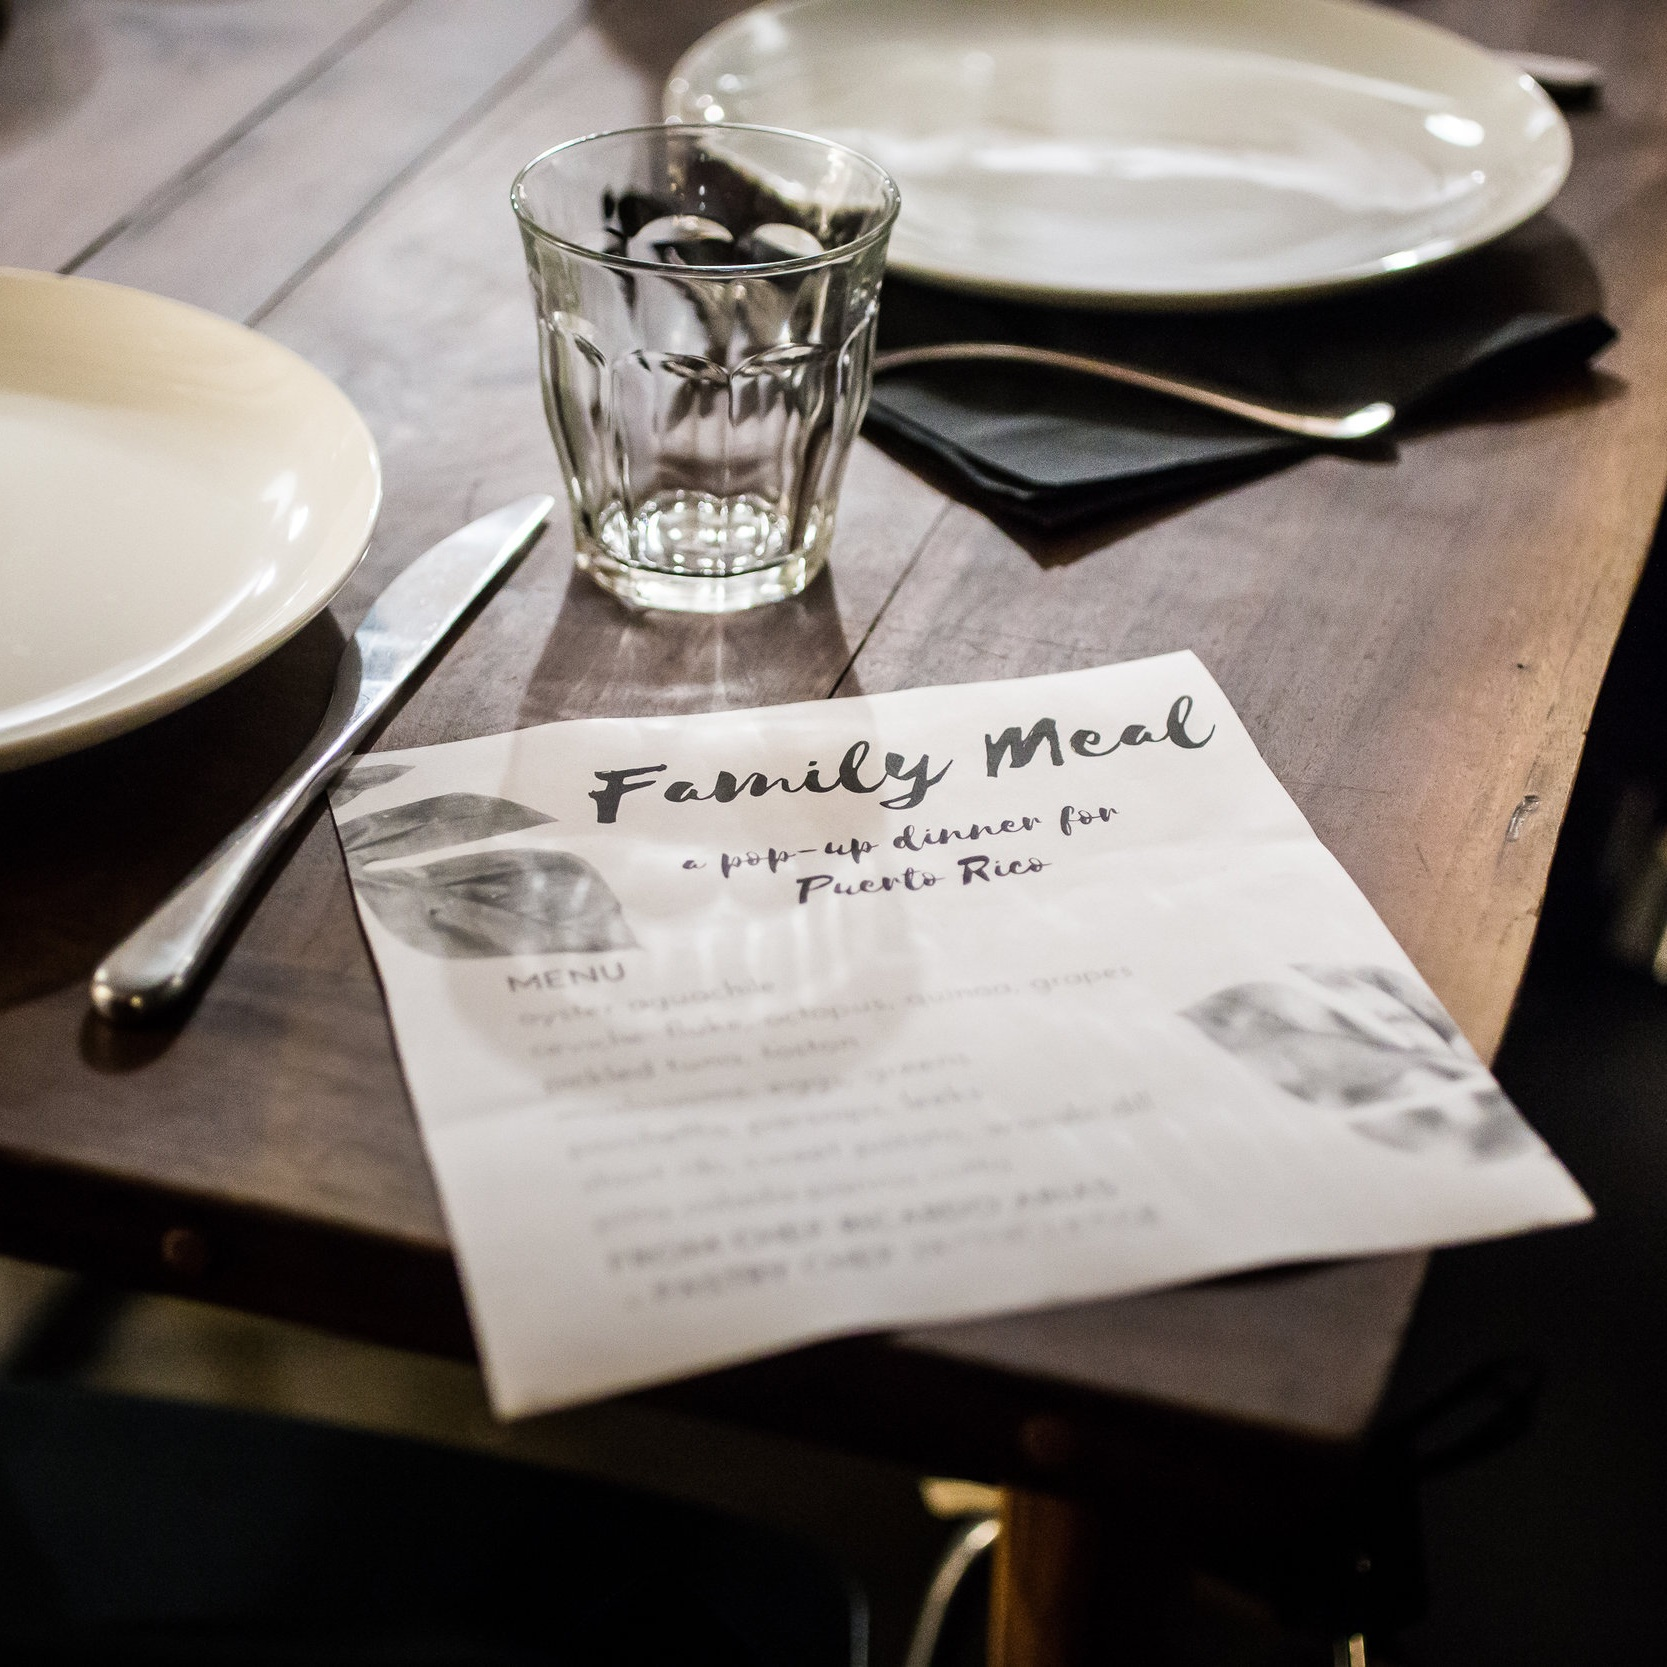 Family Meal: a pop-up dinner for Puerto Rico after Hurricane Maria   Event Production + Promotion   photo by Briana Balducci